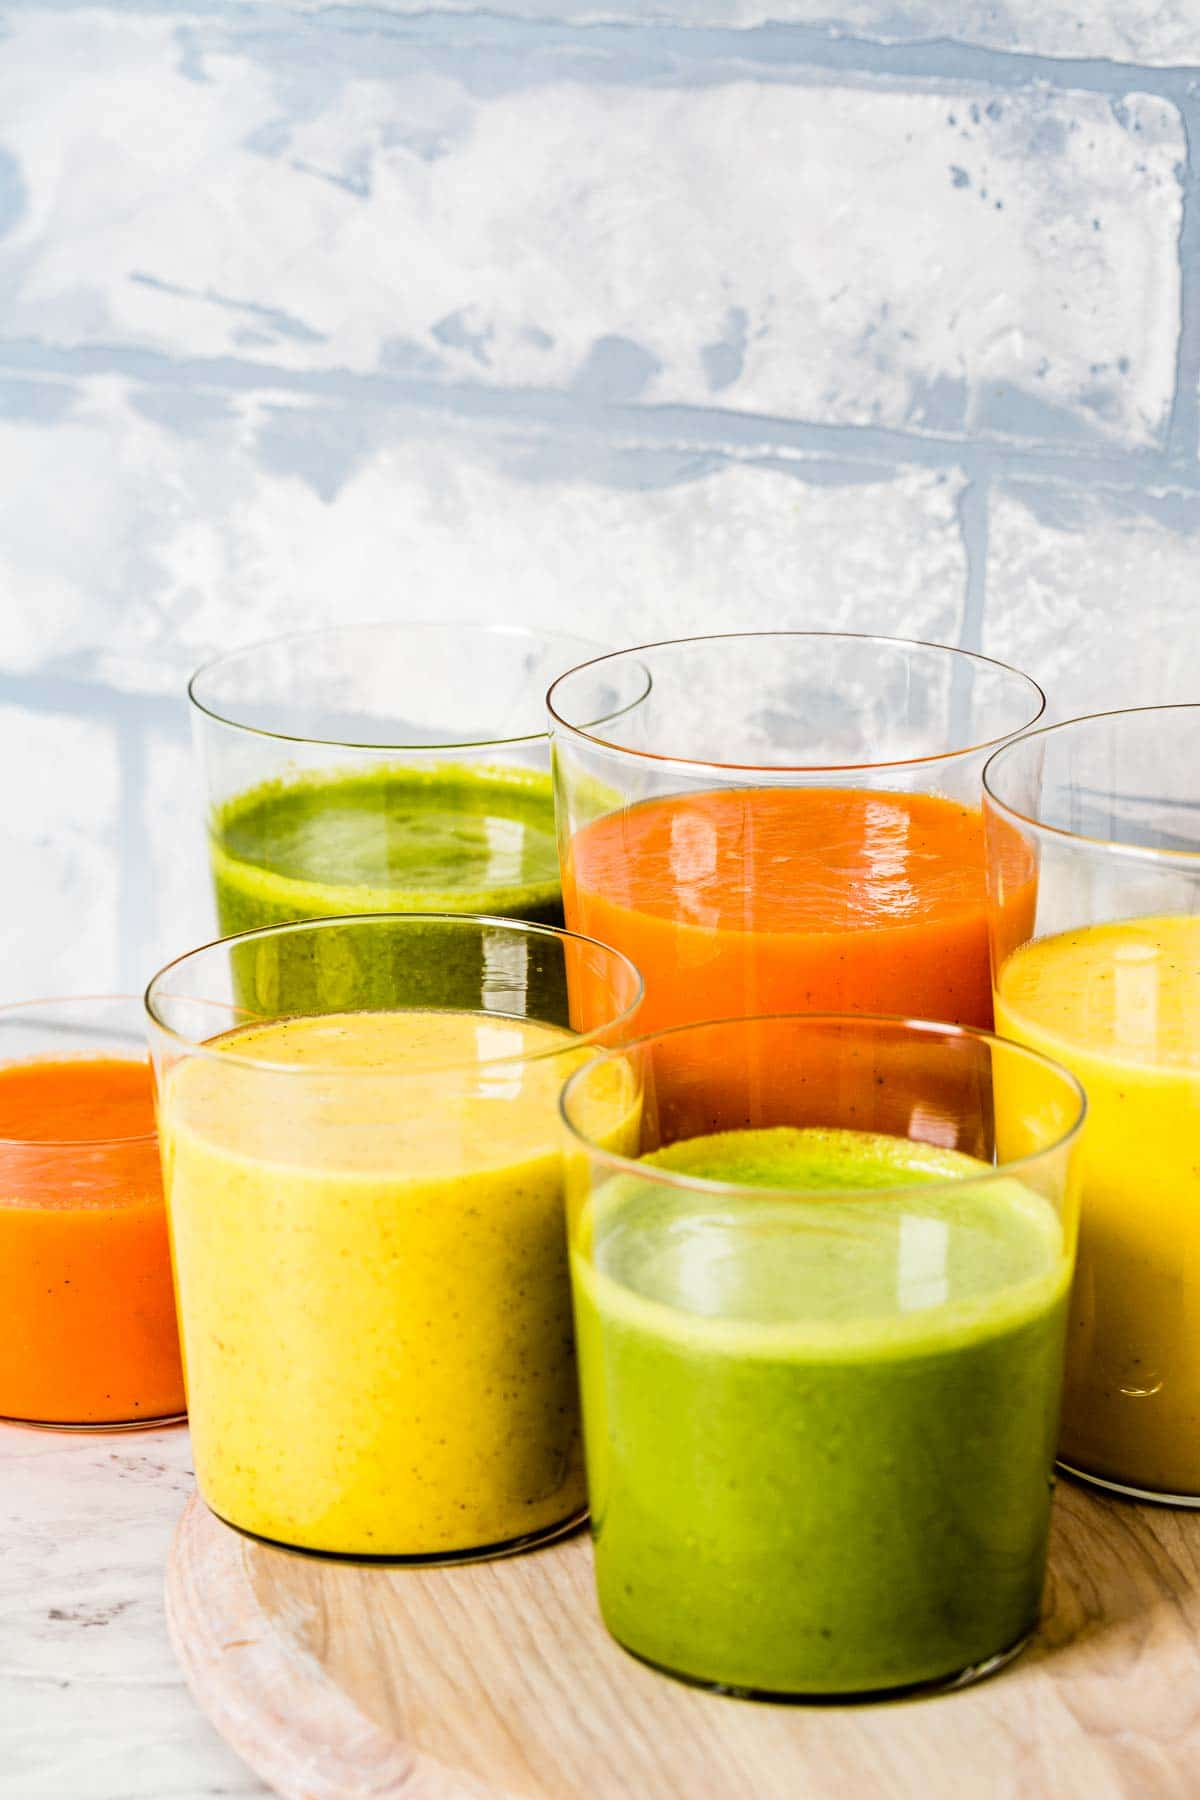 Three different kinds of turmeric smoothie recipes are placed in glasses and photographed from the front view.